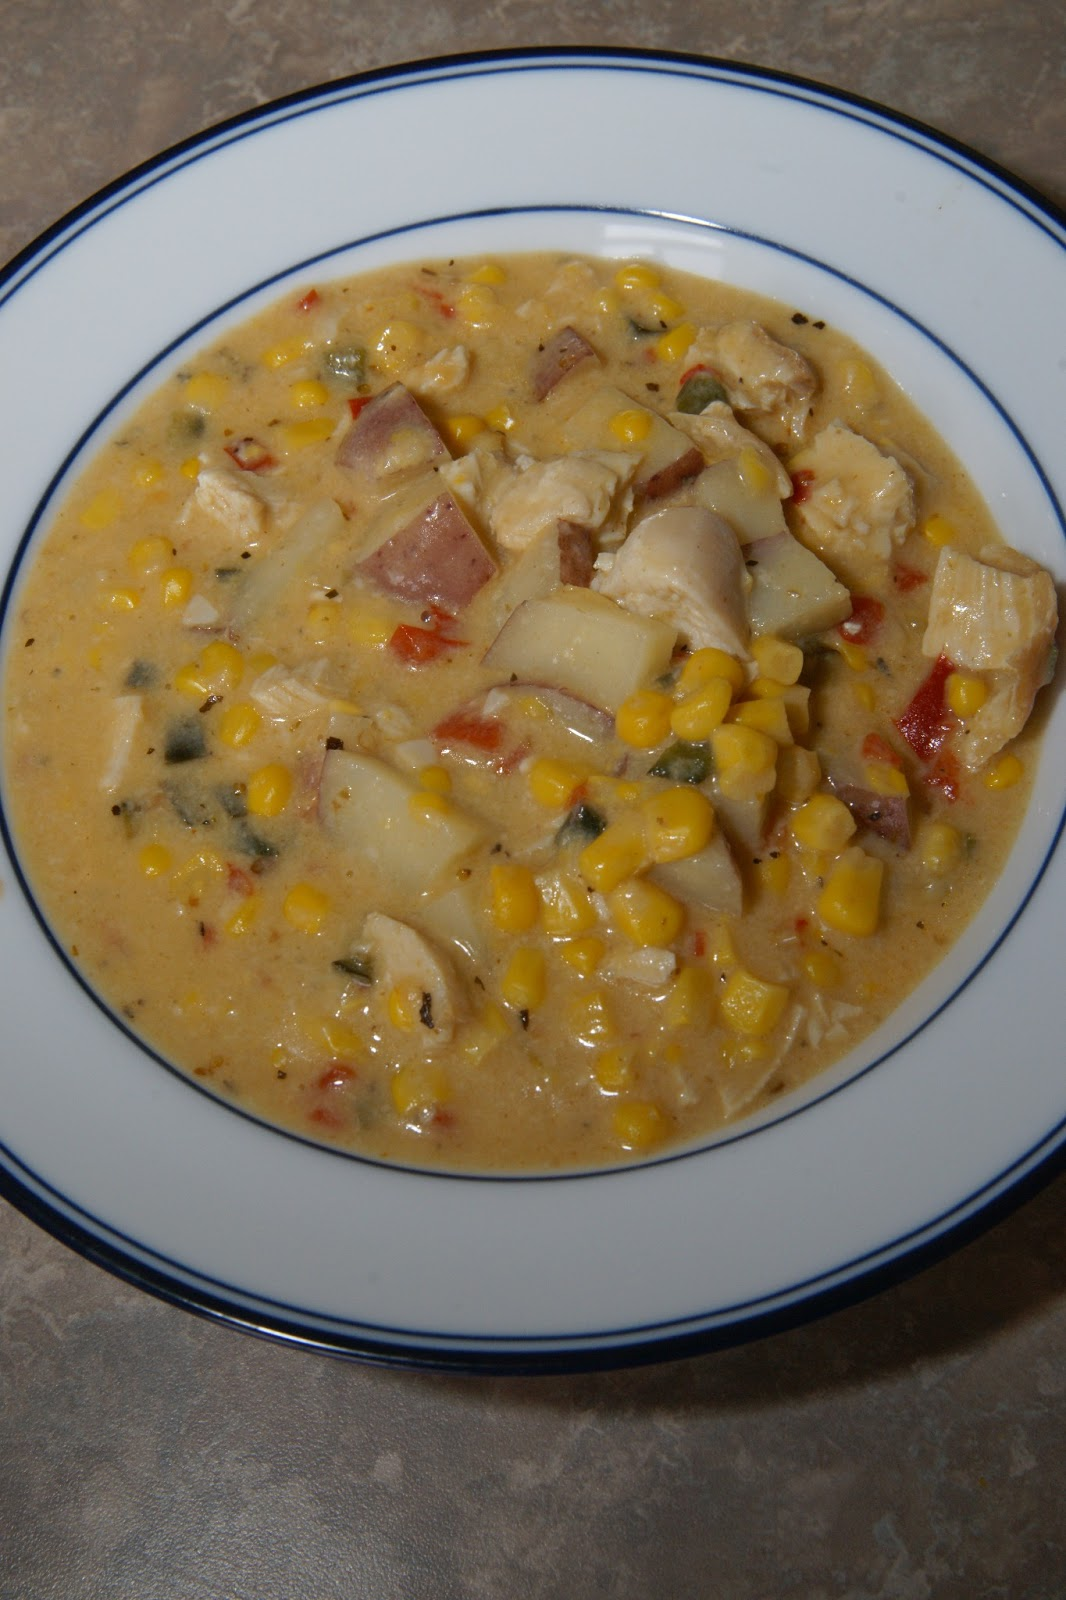 Savory Sweet and Satisfying: Chipotle Chicken and Corn Chowder